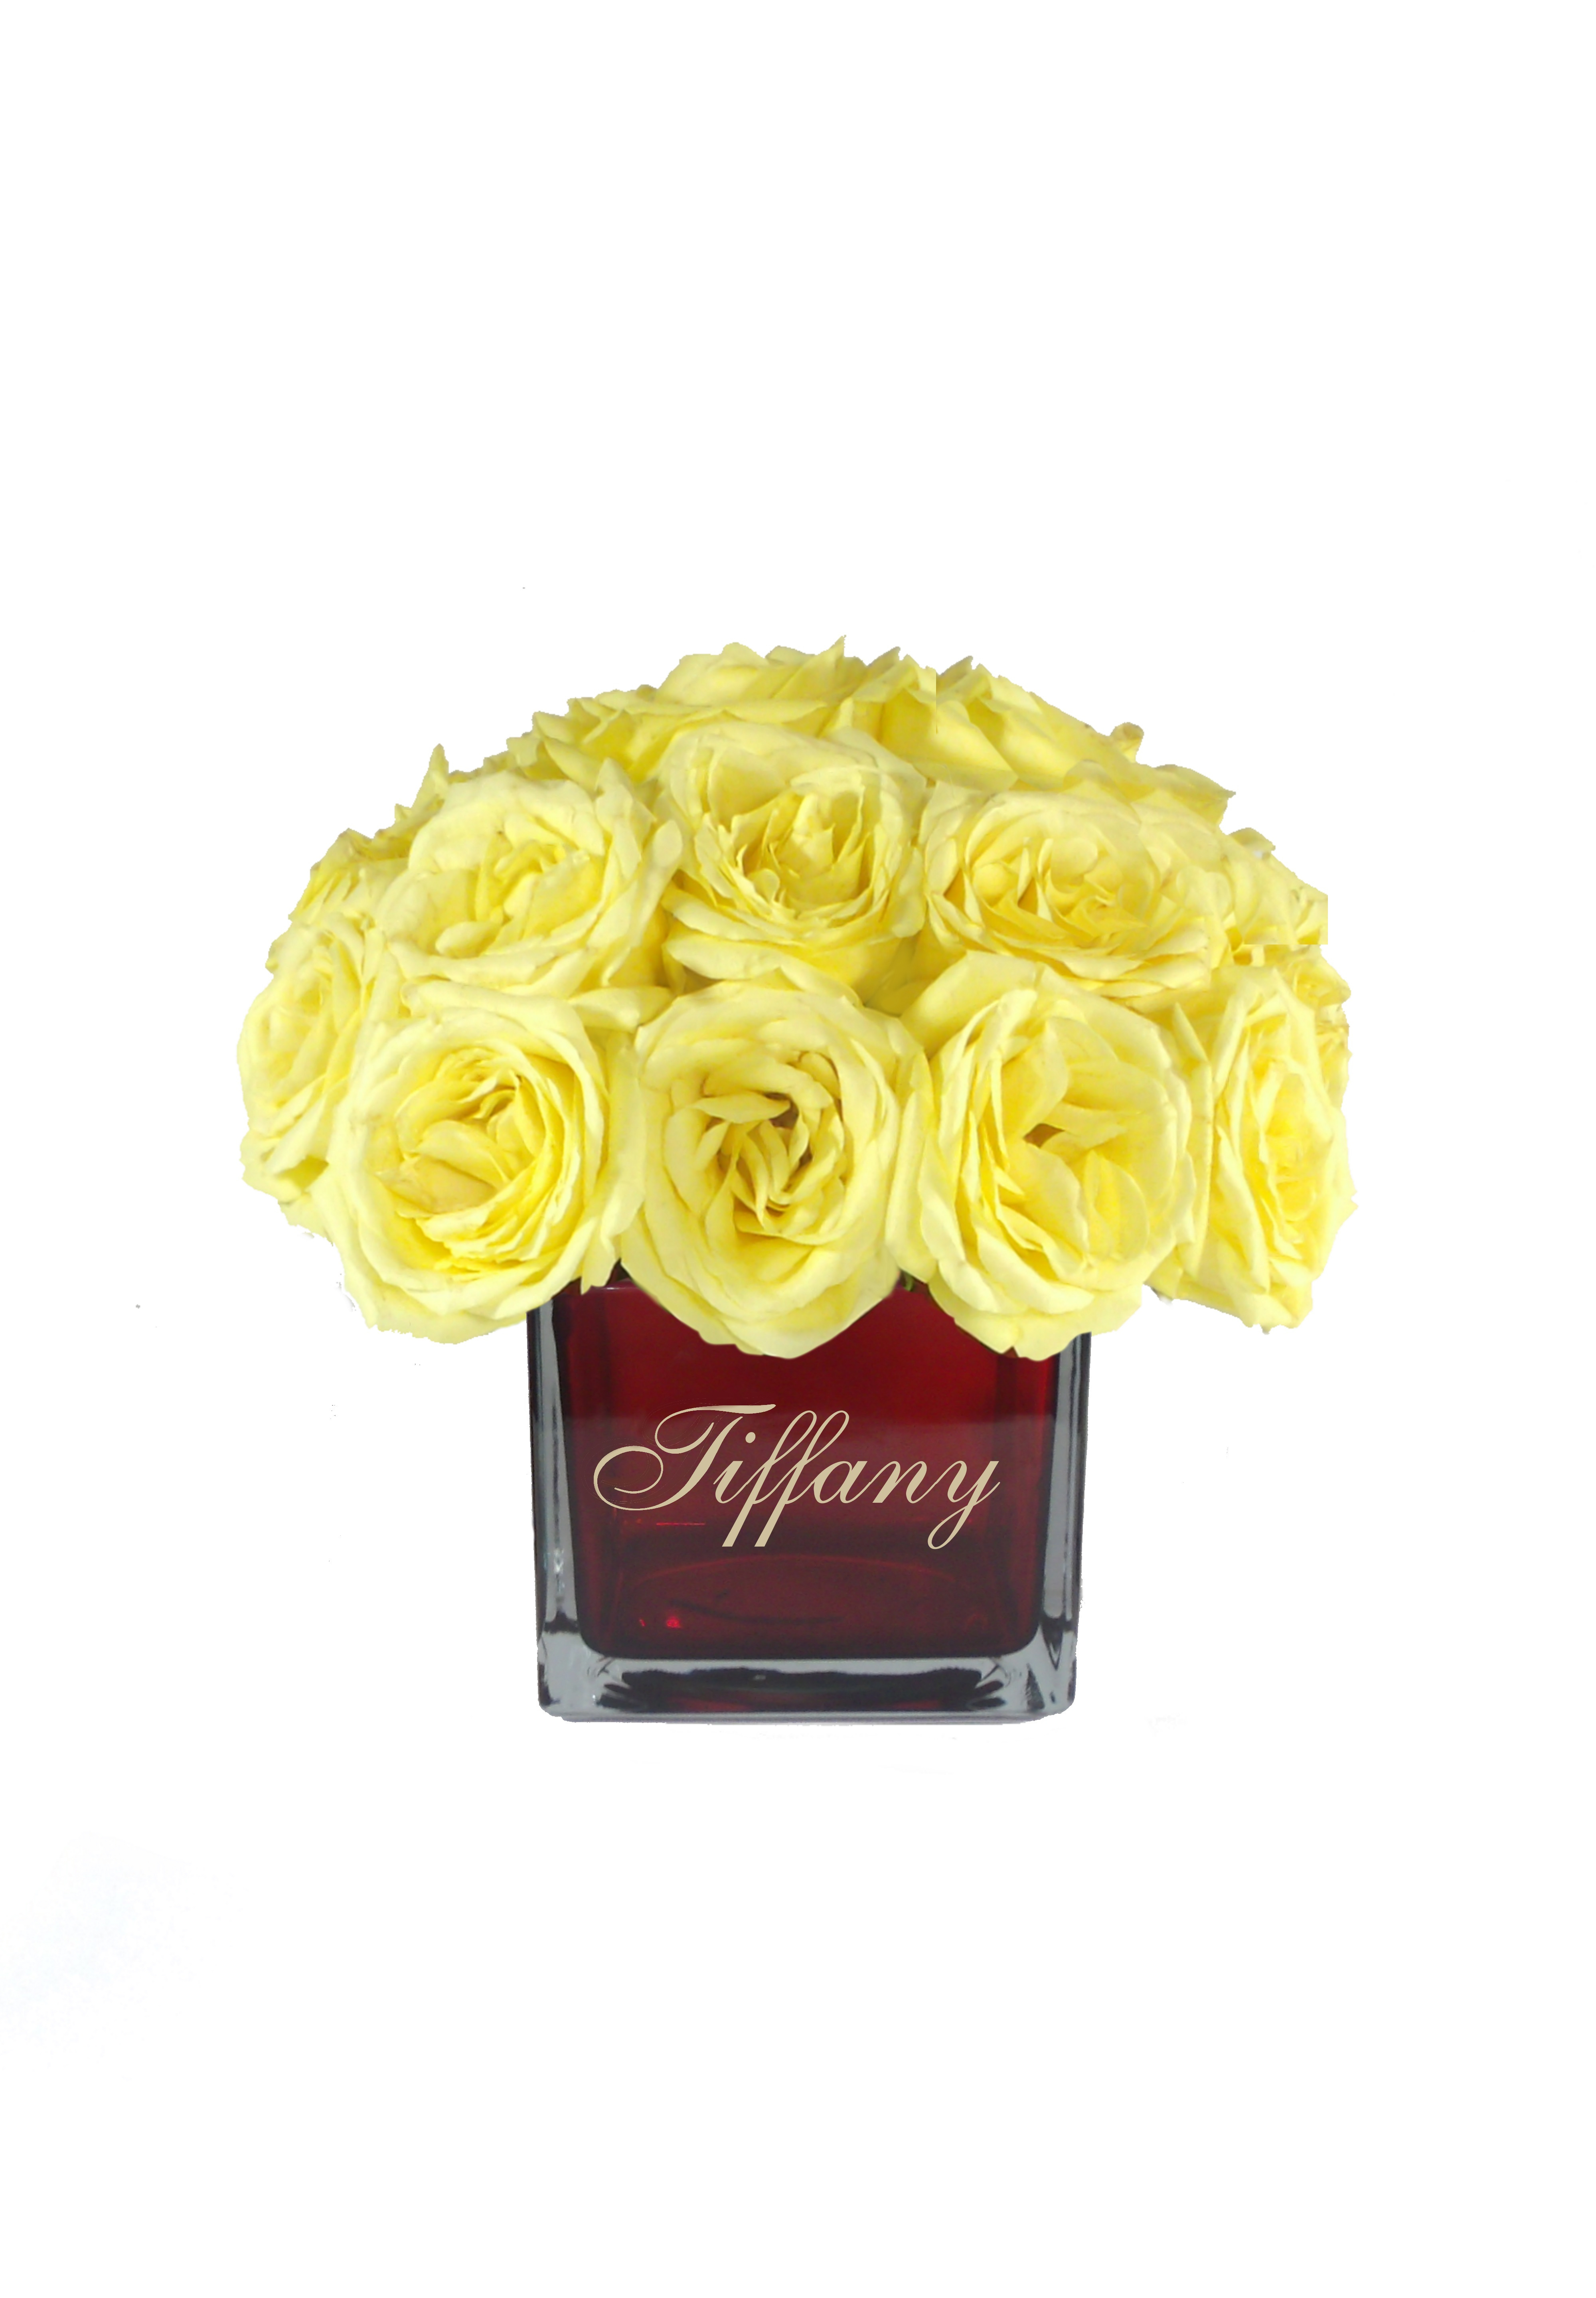 Monogrammed Personalized Vase With Yellow Roses Flower Arrangement